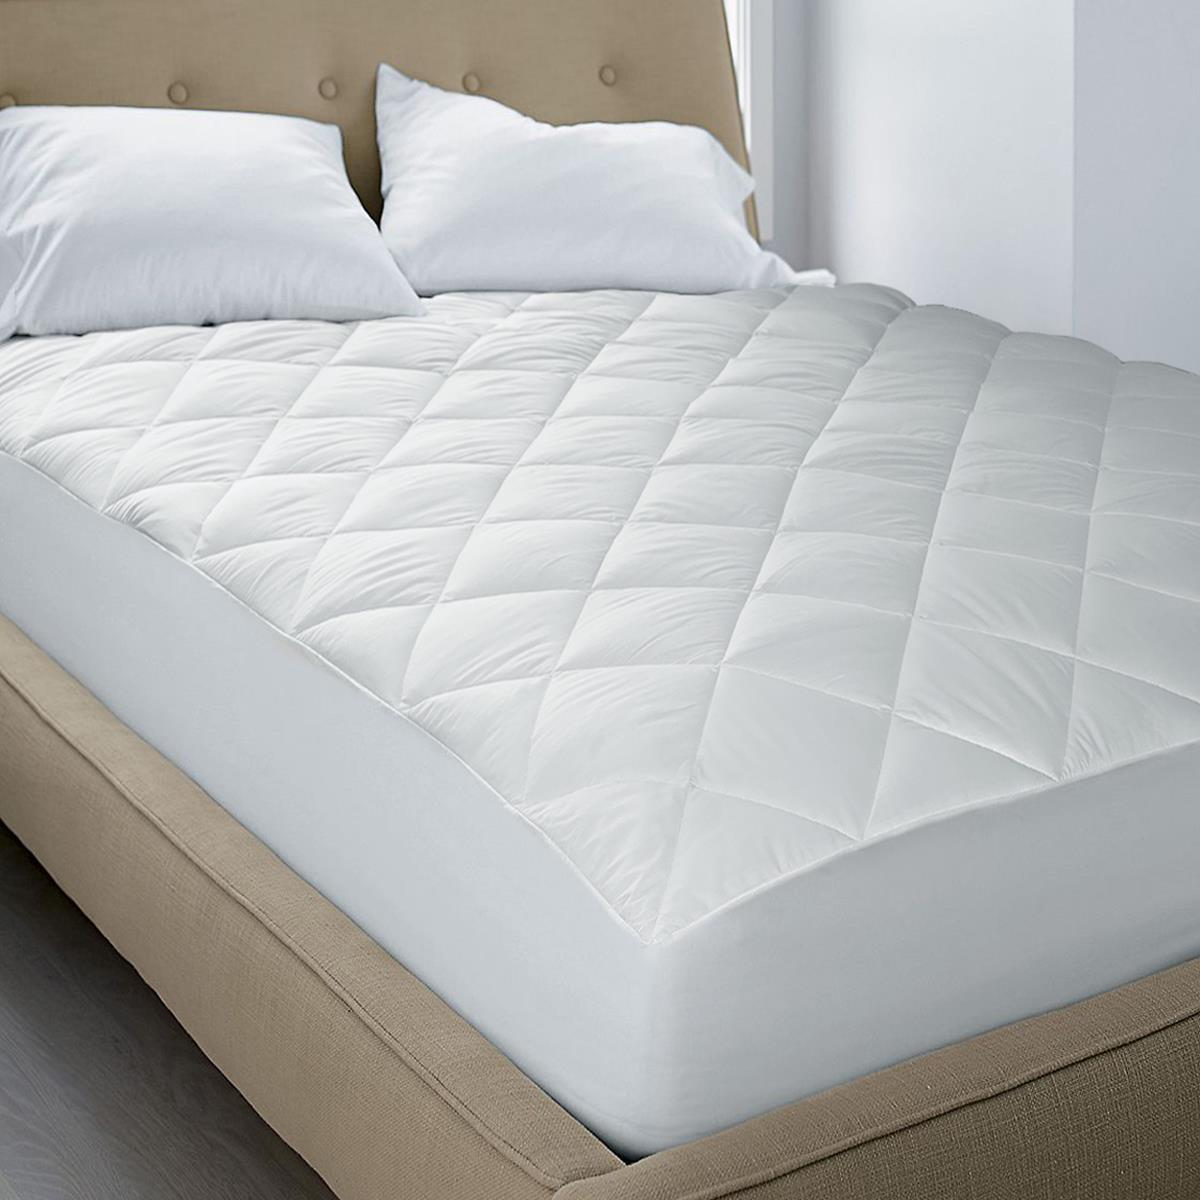 Blue Ridge Blue Ridge Quite Cotton Waterproof Mattress Pad Twin Full Queen King Or Cal King